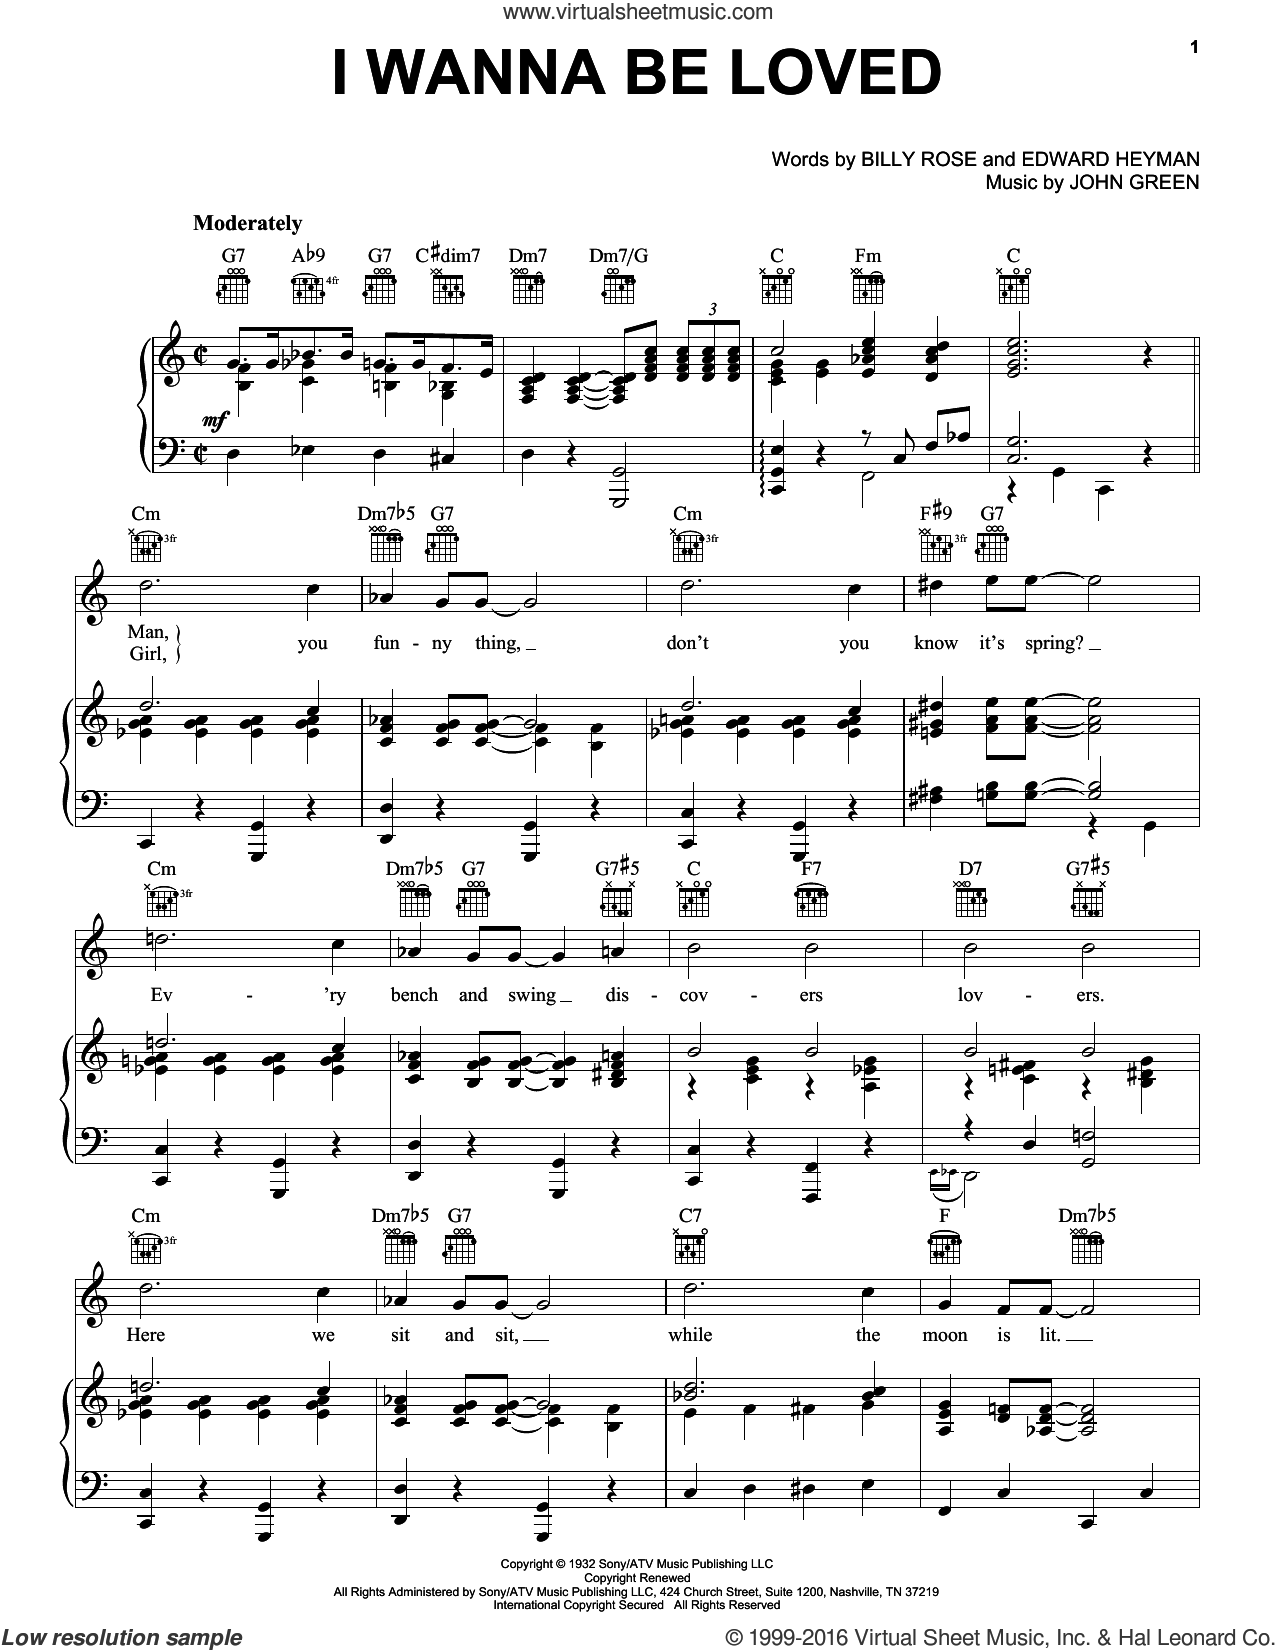 I Wanna Be Loved sheet music for voice, piano or guitar by Dinah Washington, The Andrews Sisters, Billy Rose, Edward Heyman and Johnny Green, intermediate skill level